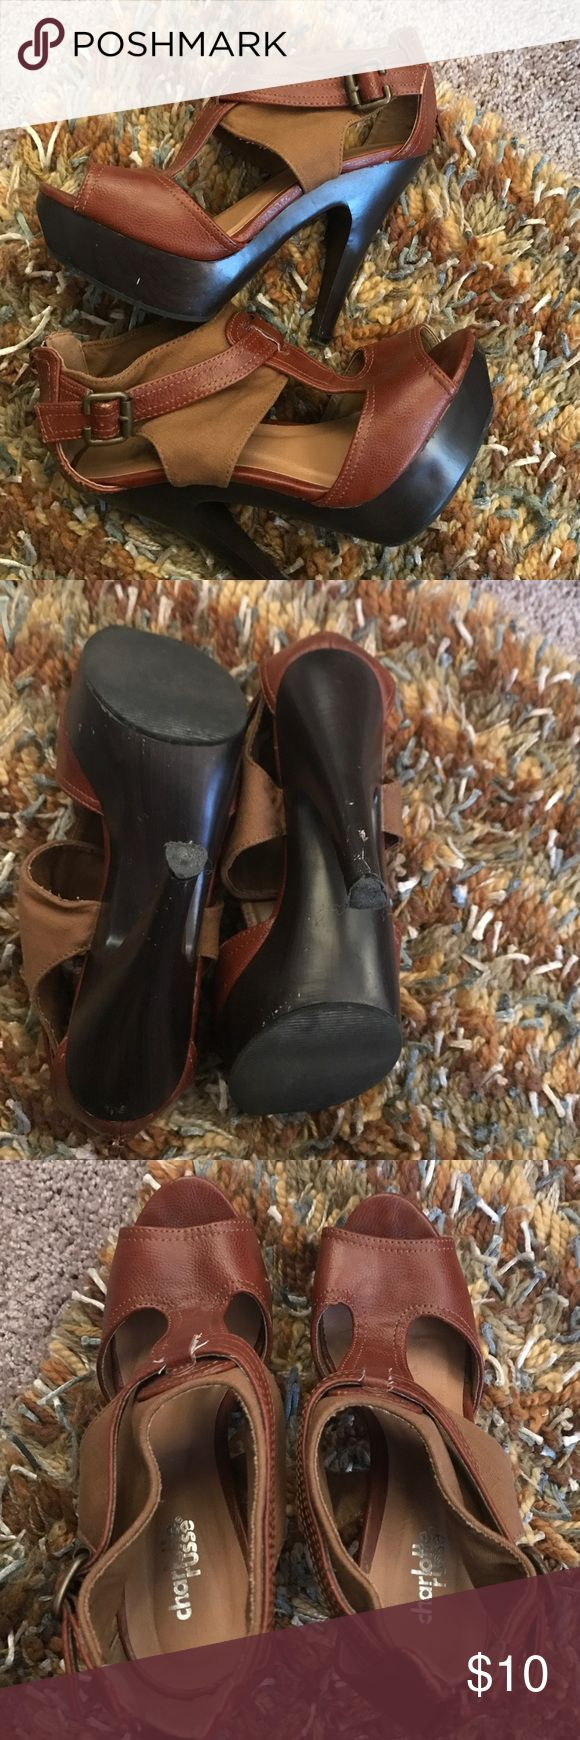 Brown Charlotte Russe Wooden Platform Heels Trendy platform heels. Wooden-look bottom. Worn a few times but still in good condition minus a couple scuffs on inner heel (not visible while wearing). Charlotte Russe Shoes Heels